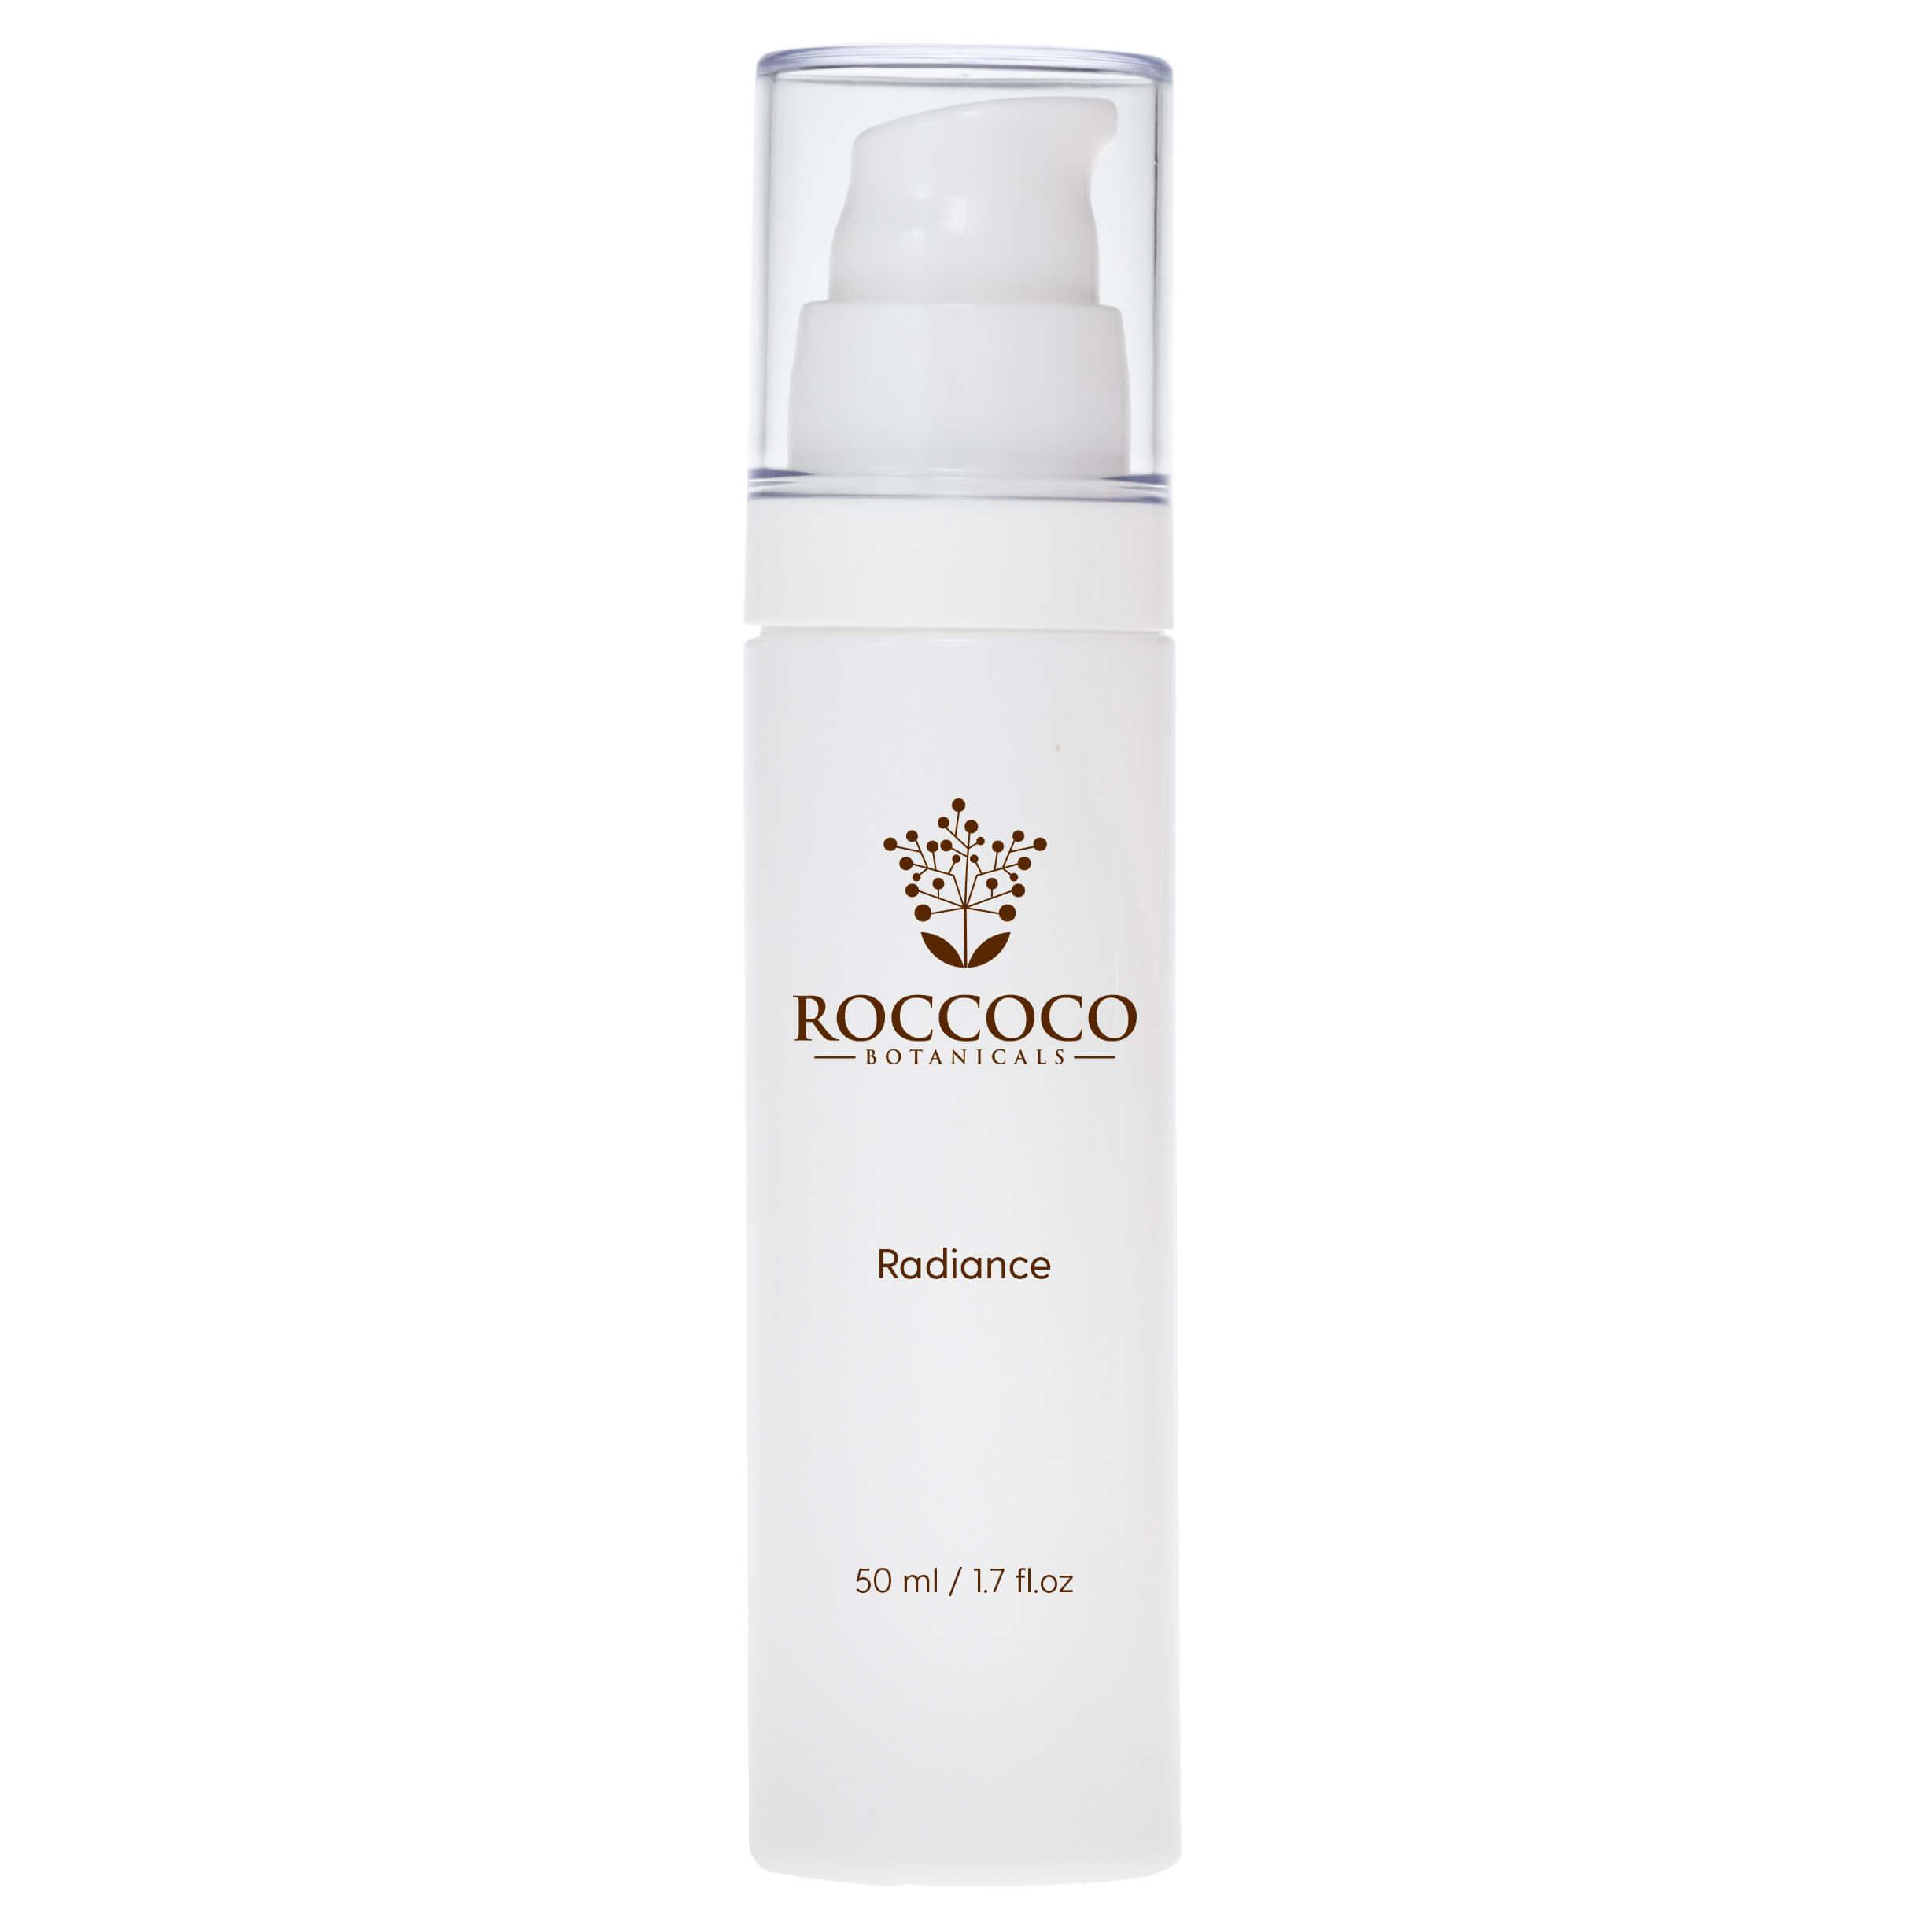 Roccoco Radiance